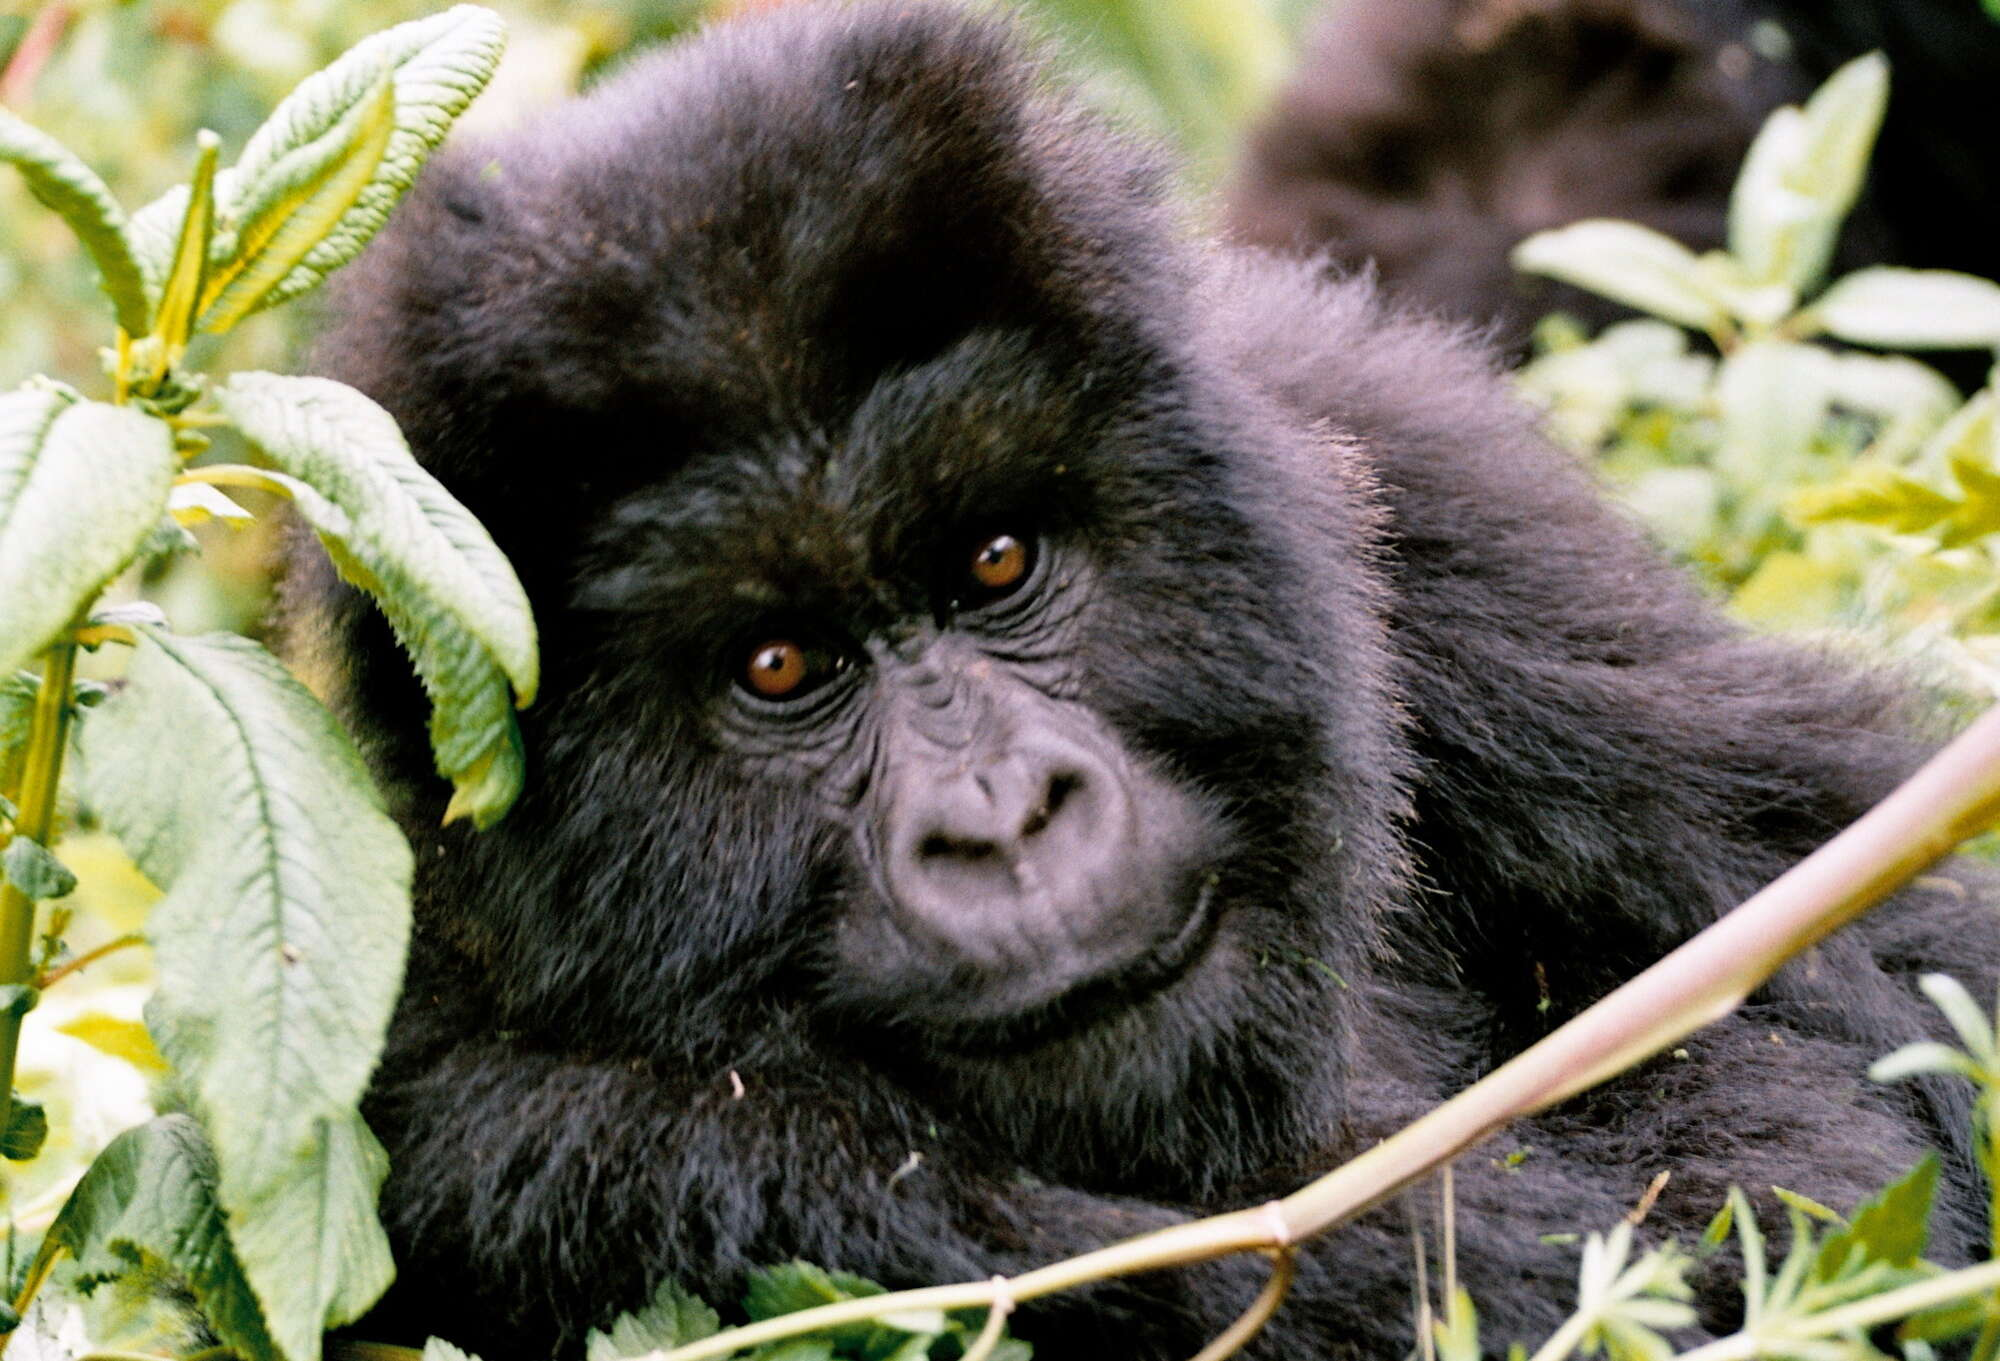 Gorillas and Serengeti Safari privately-guided safari with private 4WD visiting Volcanoes National Park, Ngorongoro Crater and the Serengeti